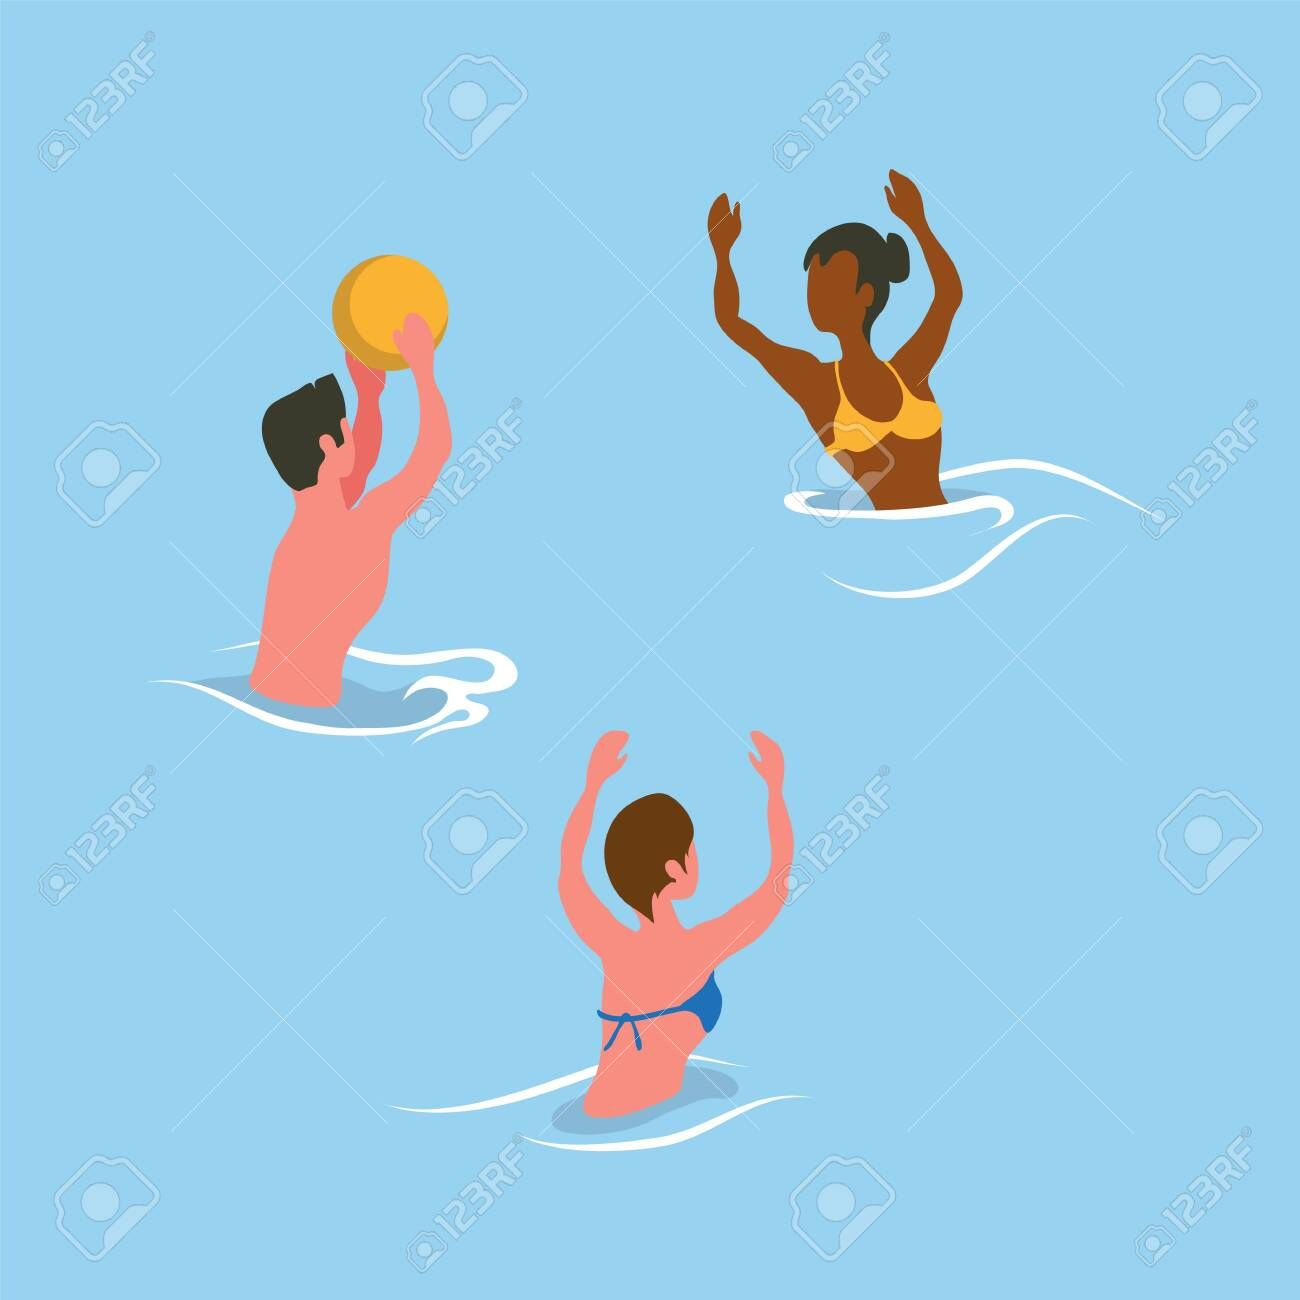 People Catching Ball In Water Summer Aqua Activity Man And Woman Wearing Swimsuit Flat Design Style Splashing And Playing Volle Sketch Book Activities Aqua